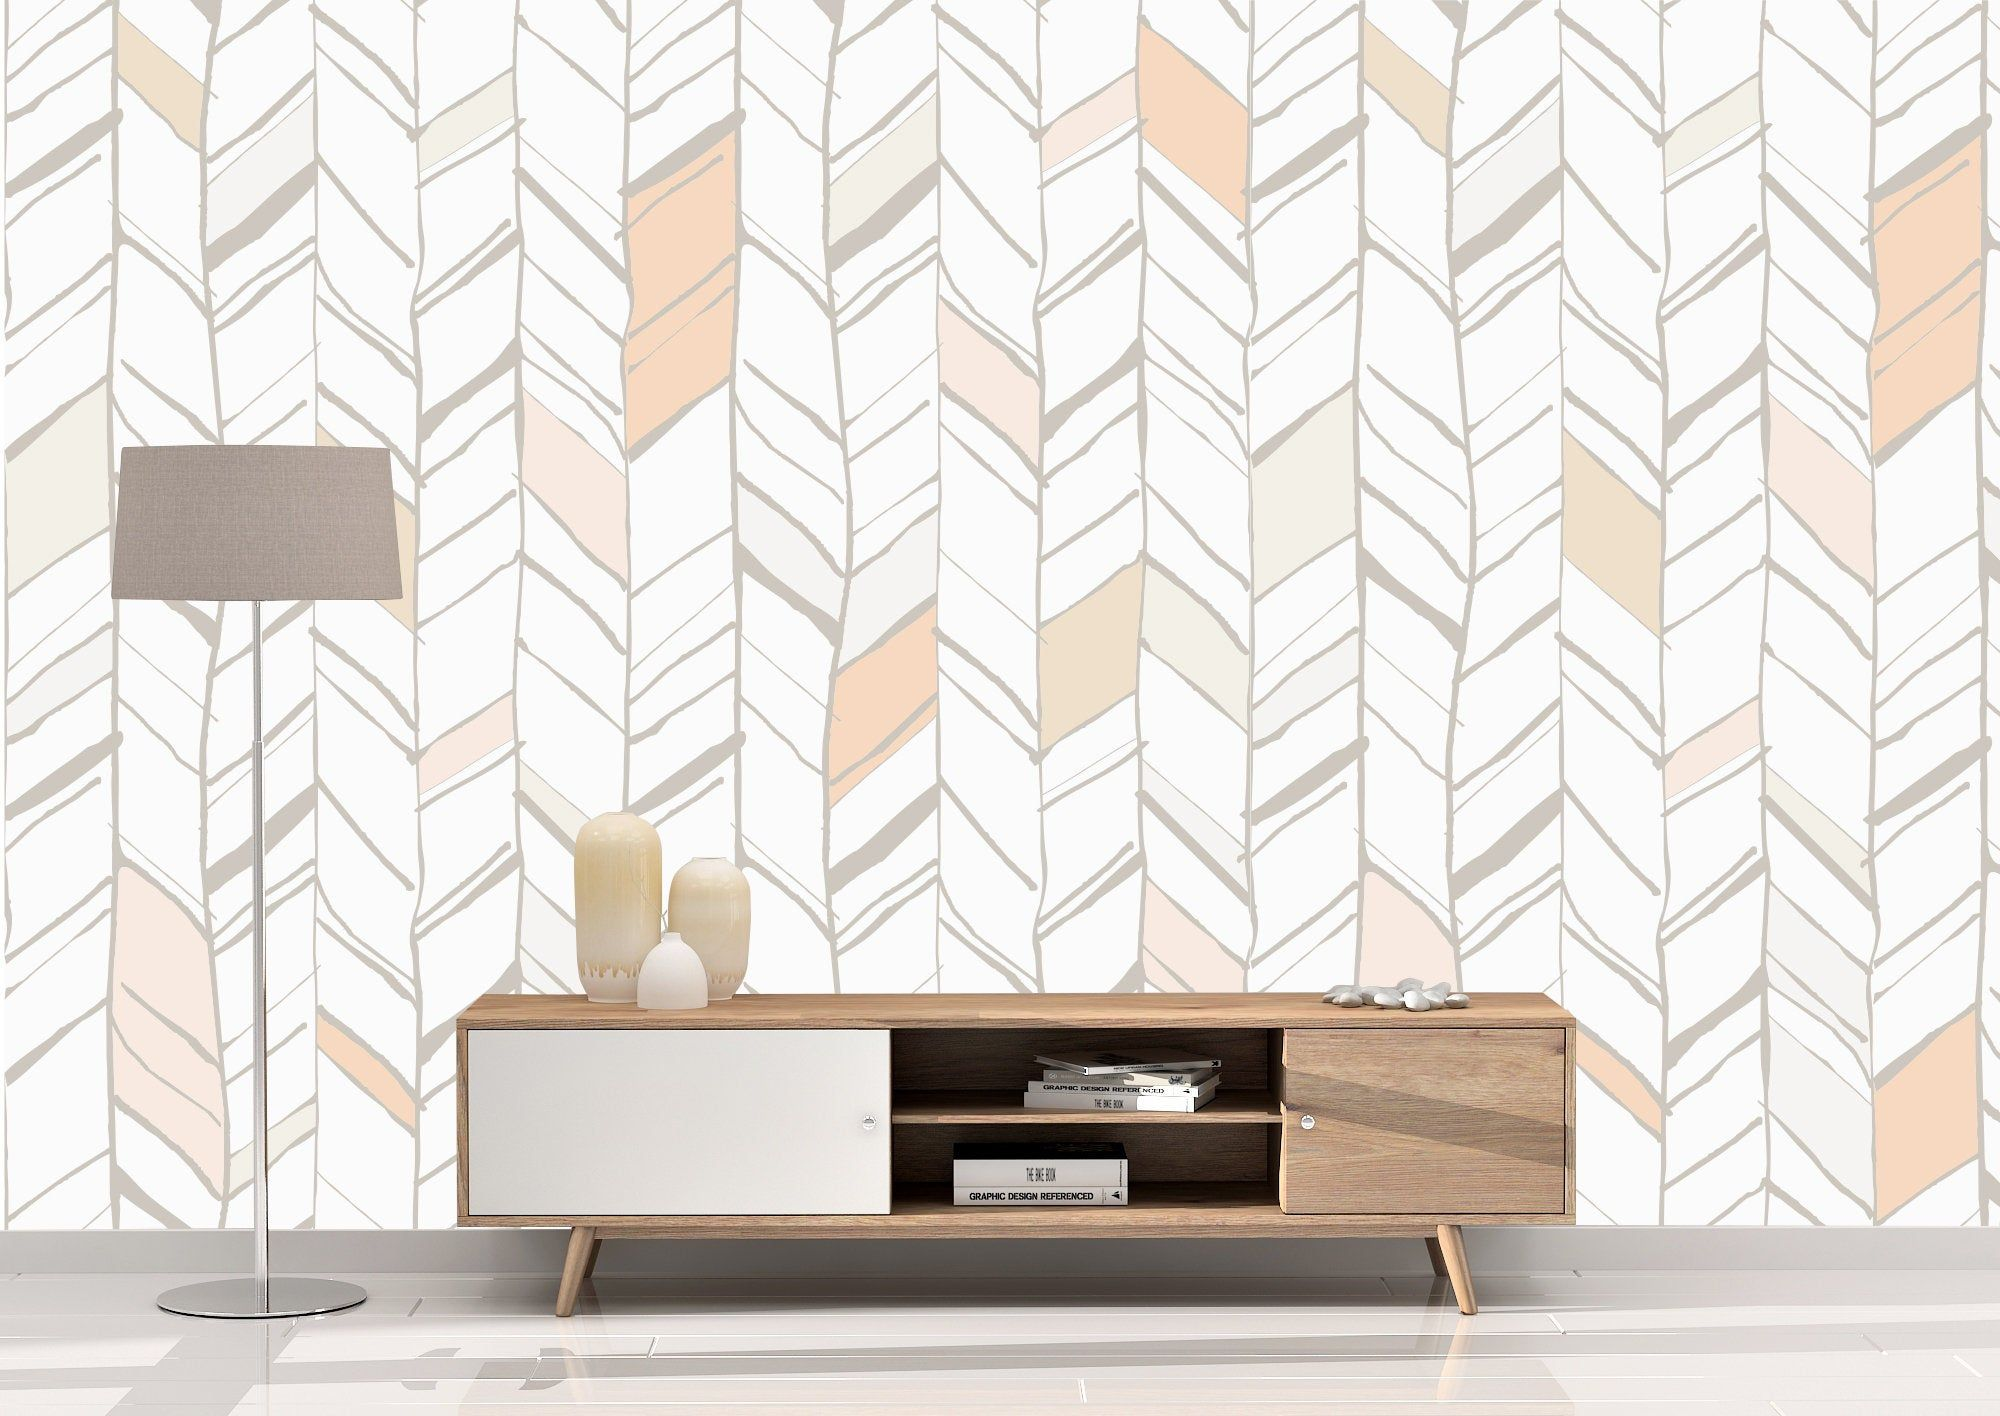 Removable Peel And Stick Wallpaper Peach Herringbone Coral Etsy Herringbone Wallpaper Peel And Stick Wallpaper Vinyl Wallpaper